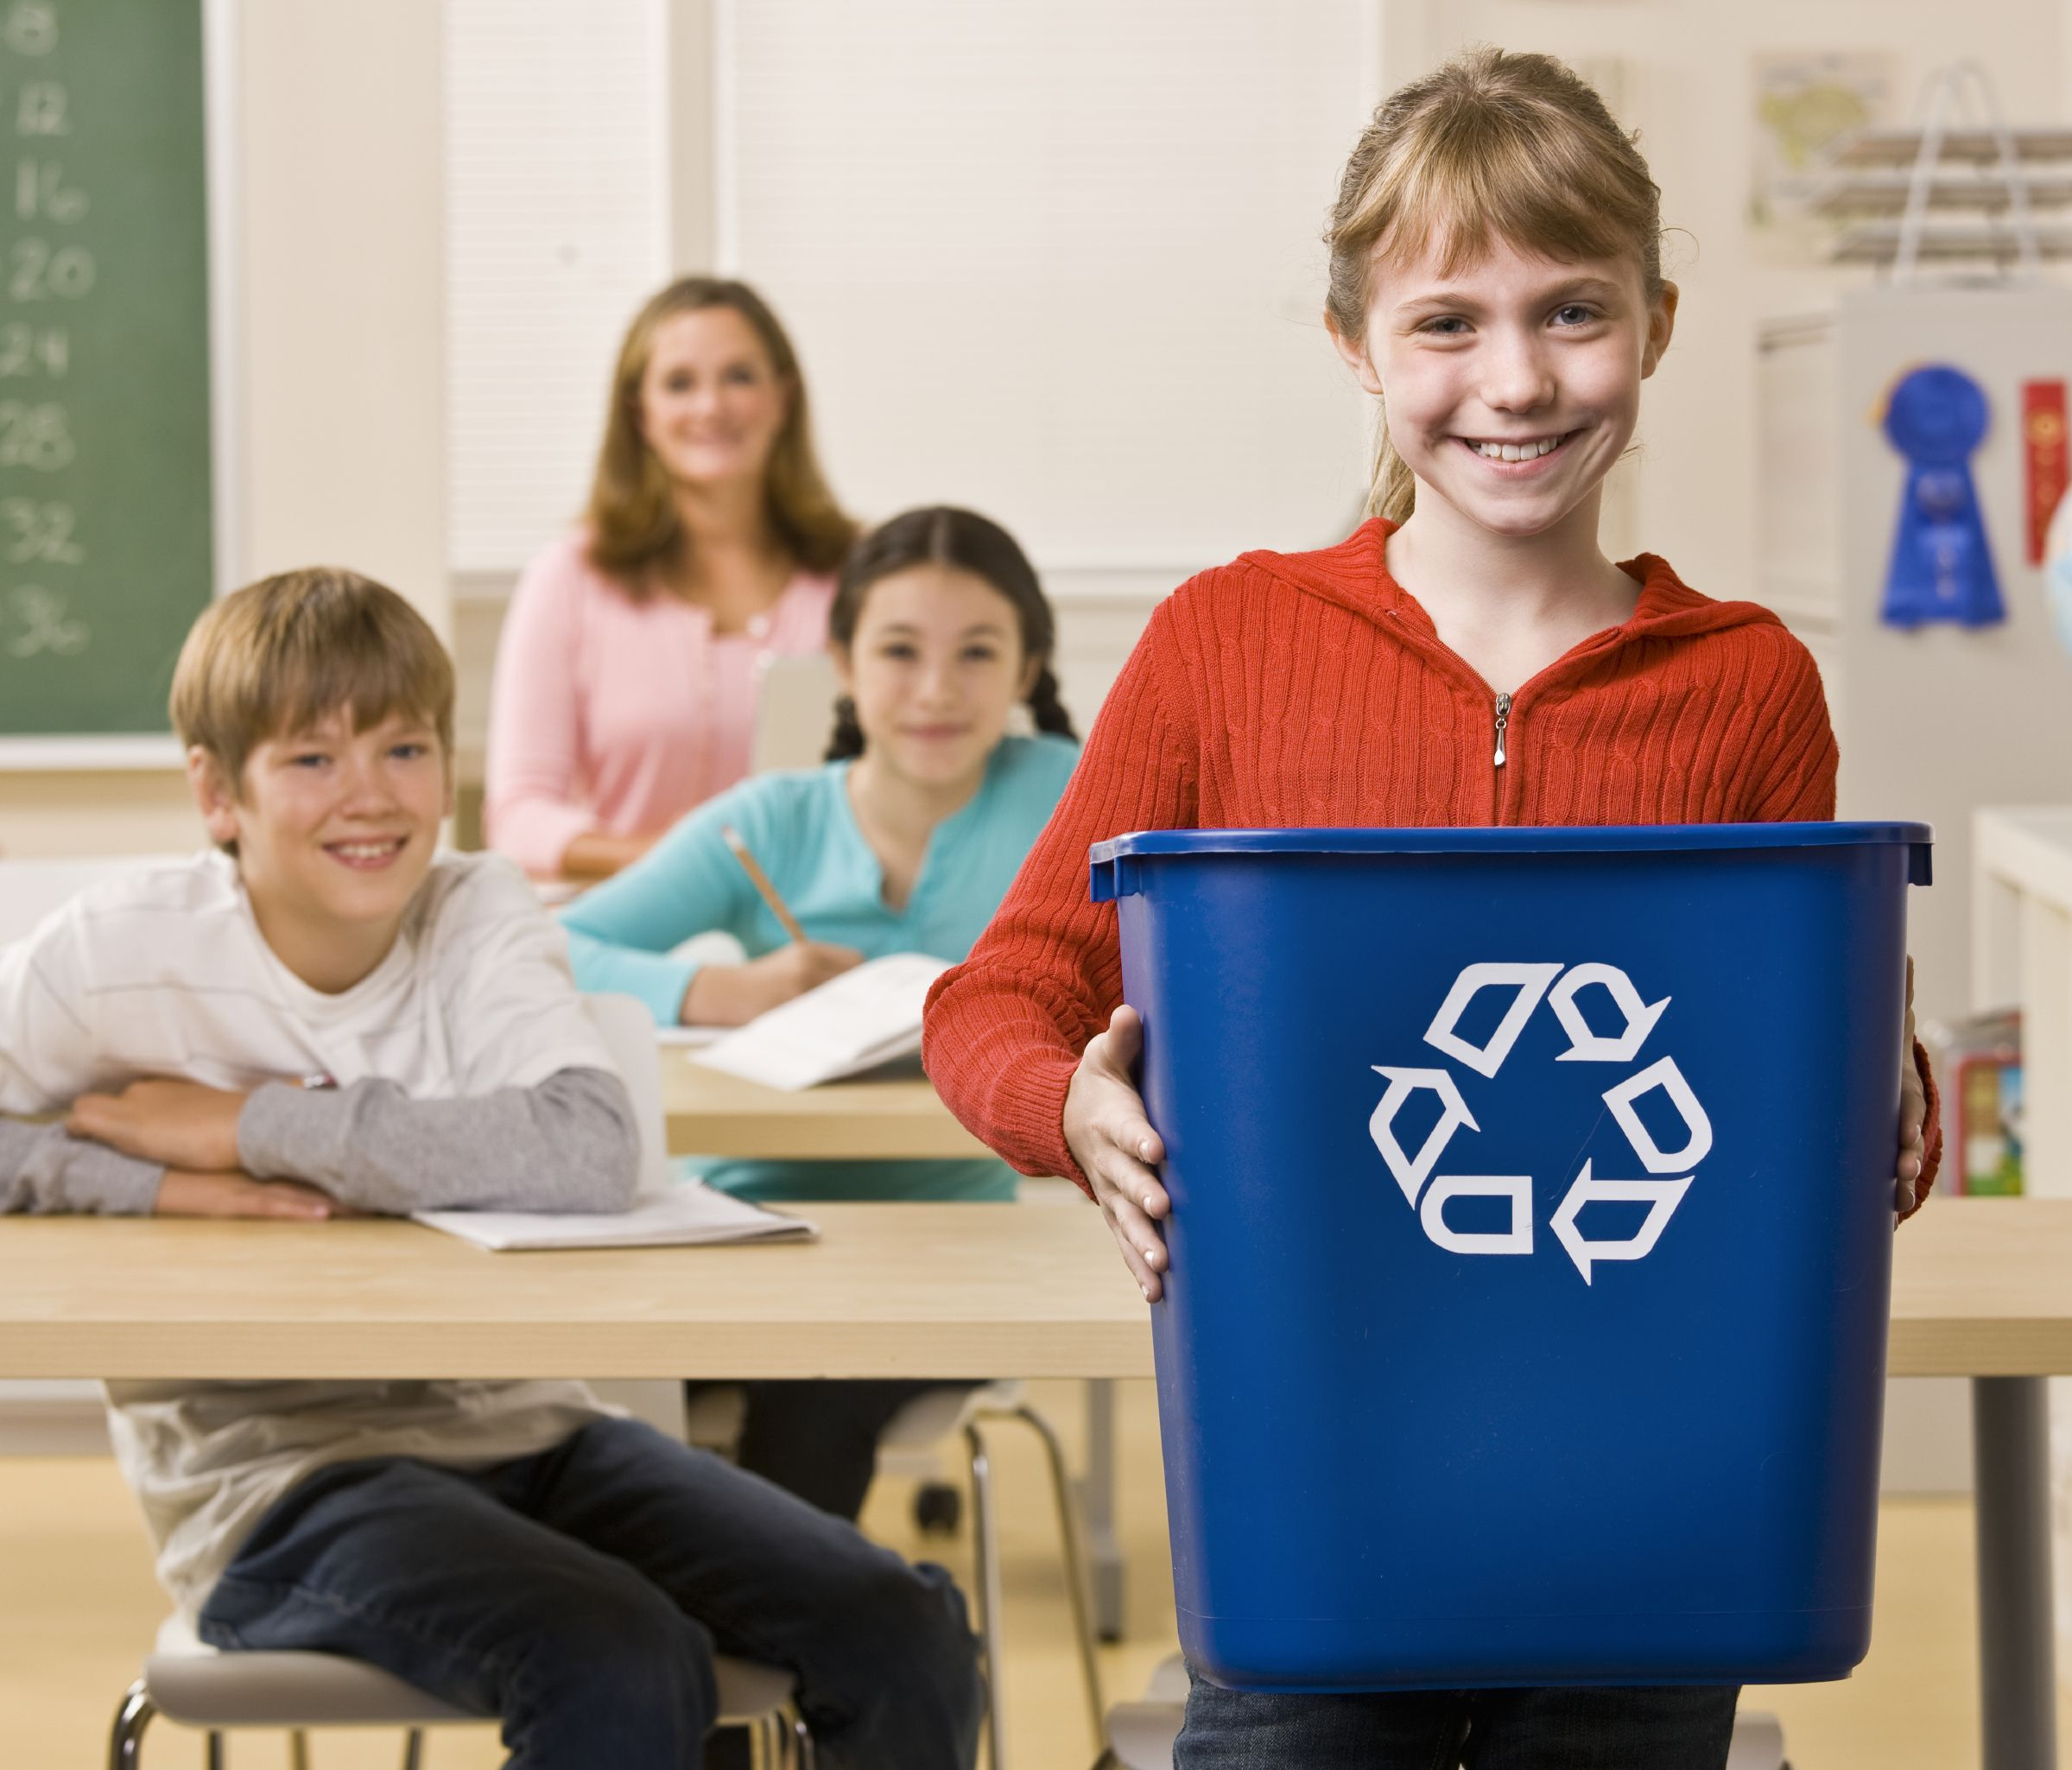 Recycling is fun for everyone!